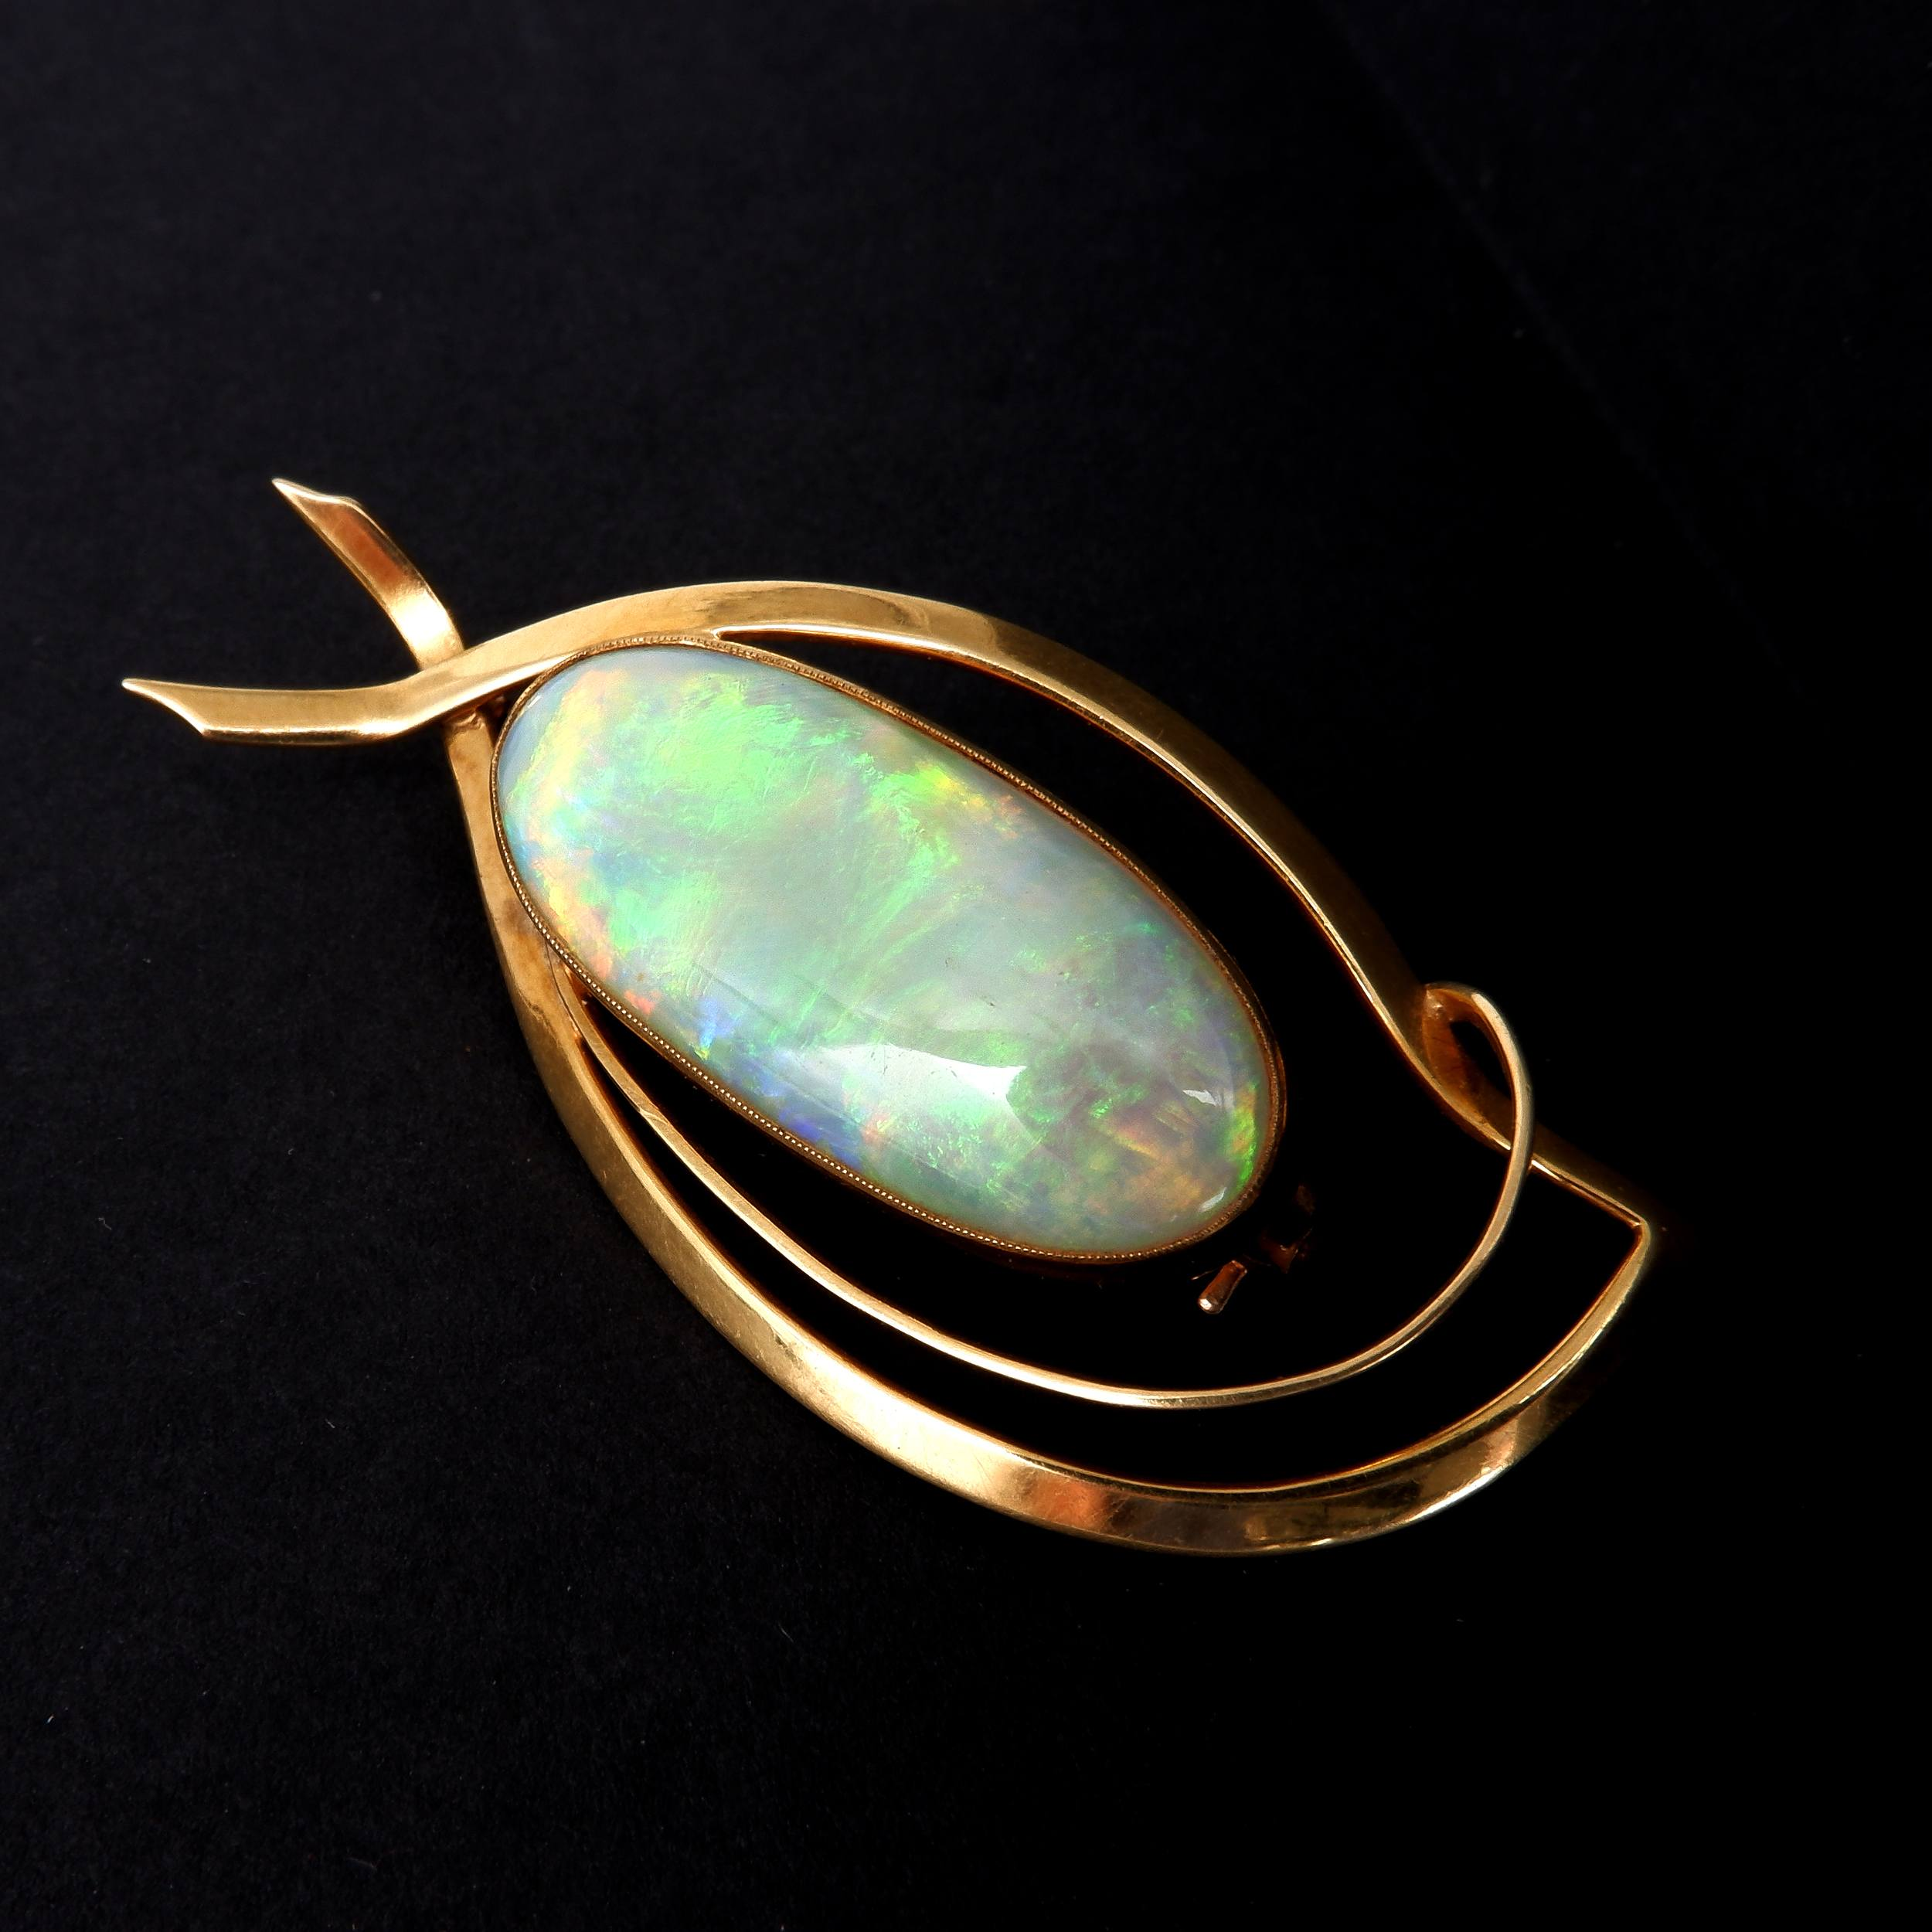 '18ct Yellow Gold Brooch With 10.00ct Solid Opal Cabochon'